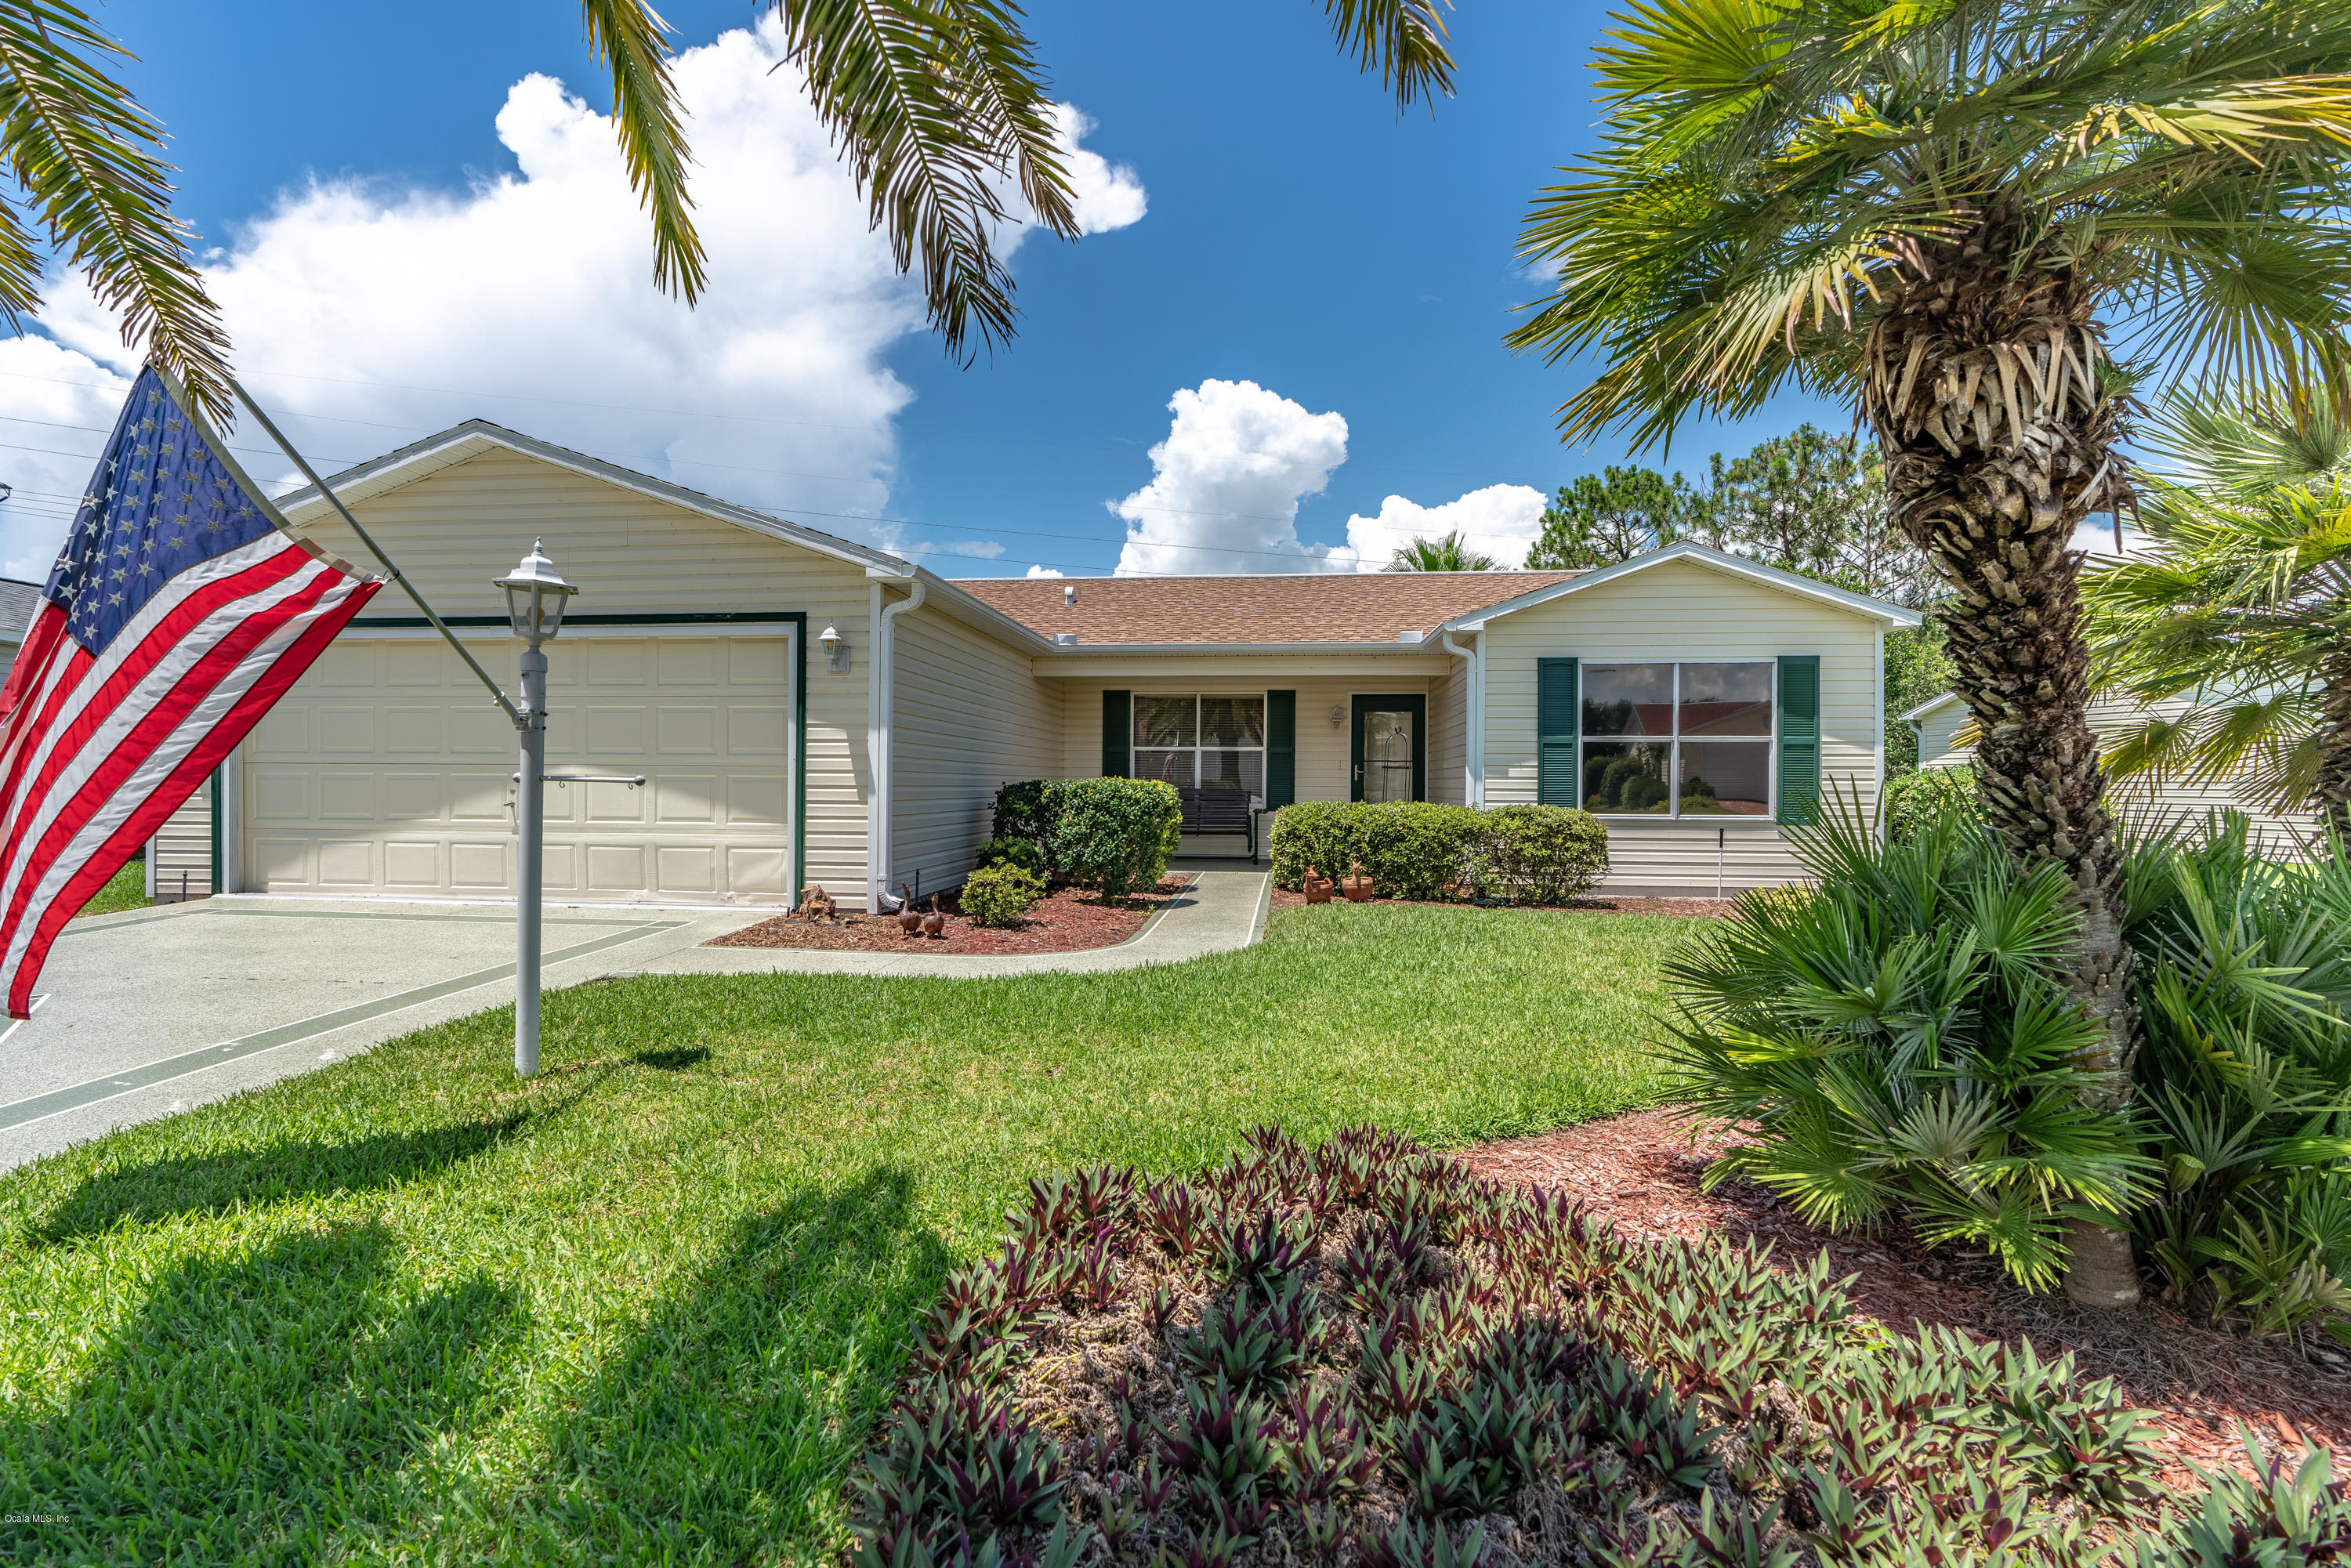 818 CAMINO DEL REY DRIVE, THE VILLAGES, FL 32159